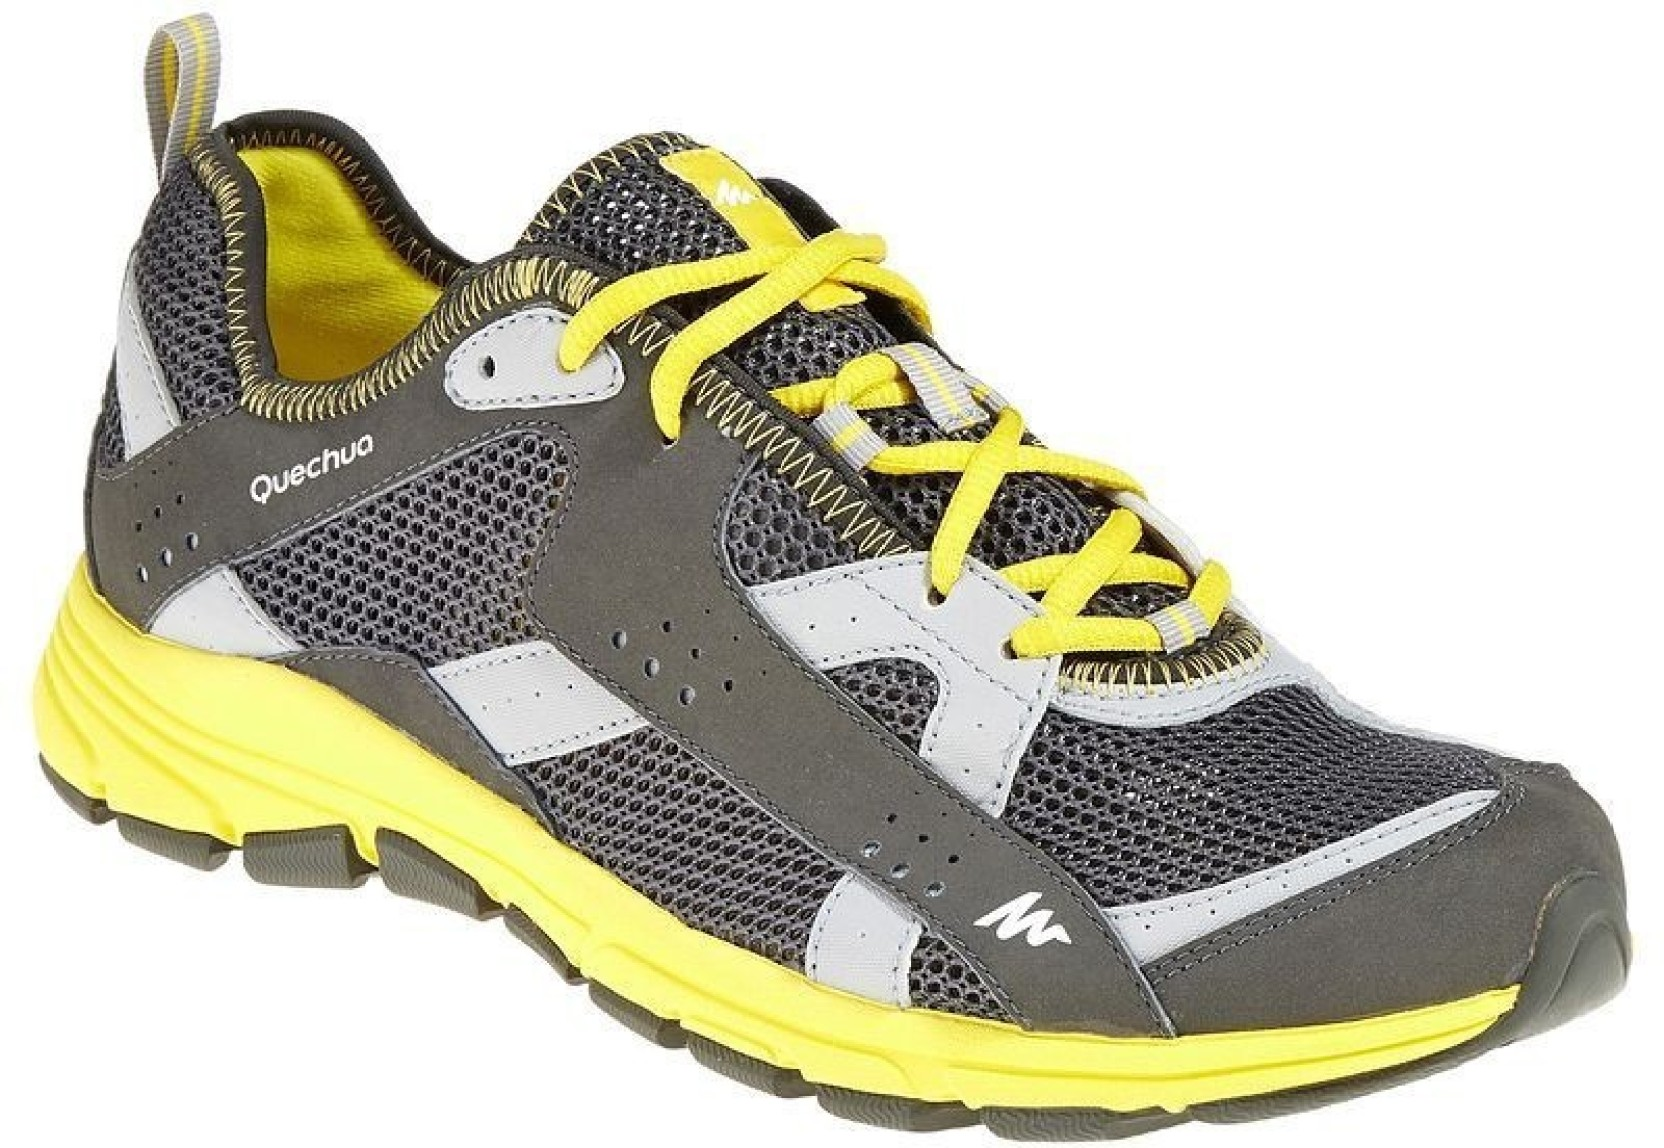 c5a96d58f711 Quechua by Decathlon Arpenaz 200 Fresh Trainers Hiking   Trekking Shoes For  Men (Grey